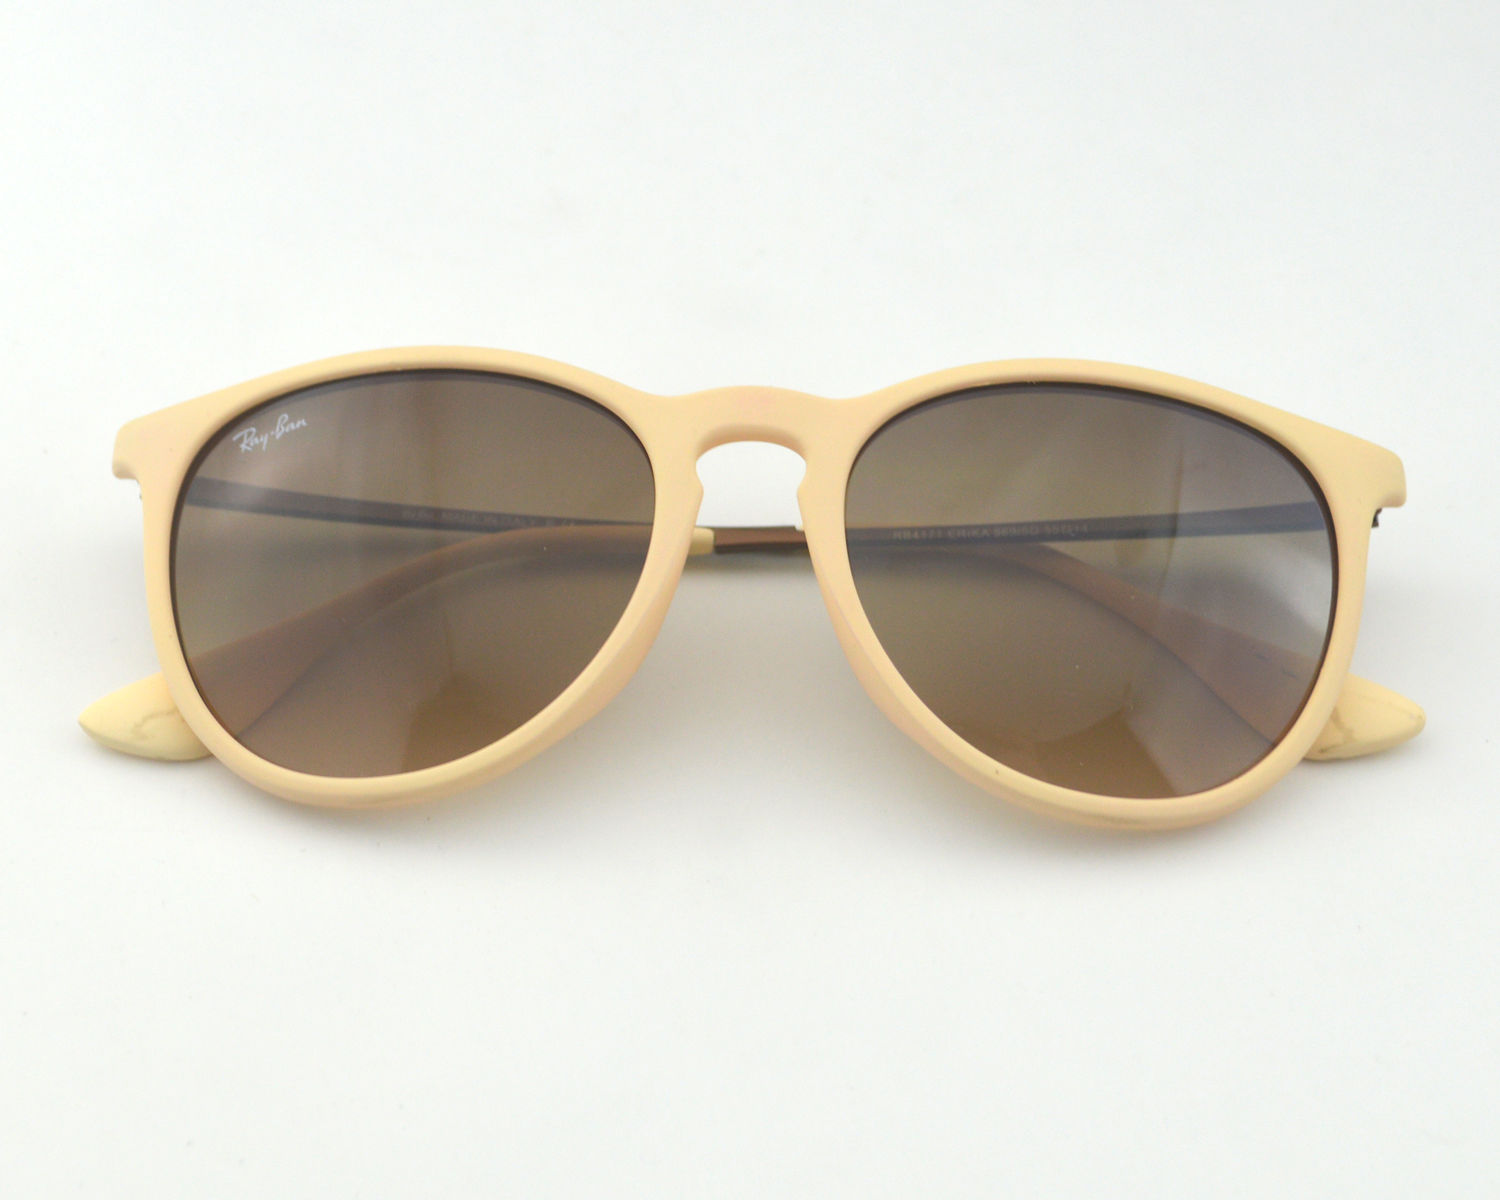 7cf9c5fb8e Ray-Ban RB 4171 Erika 869 5D Creamy white Frame Brown Gradient Glass Lens  Sunglasses 55mm